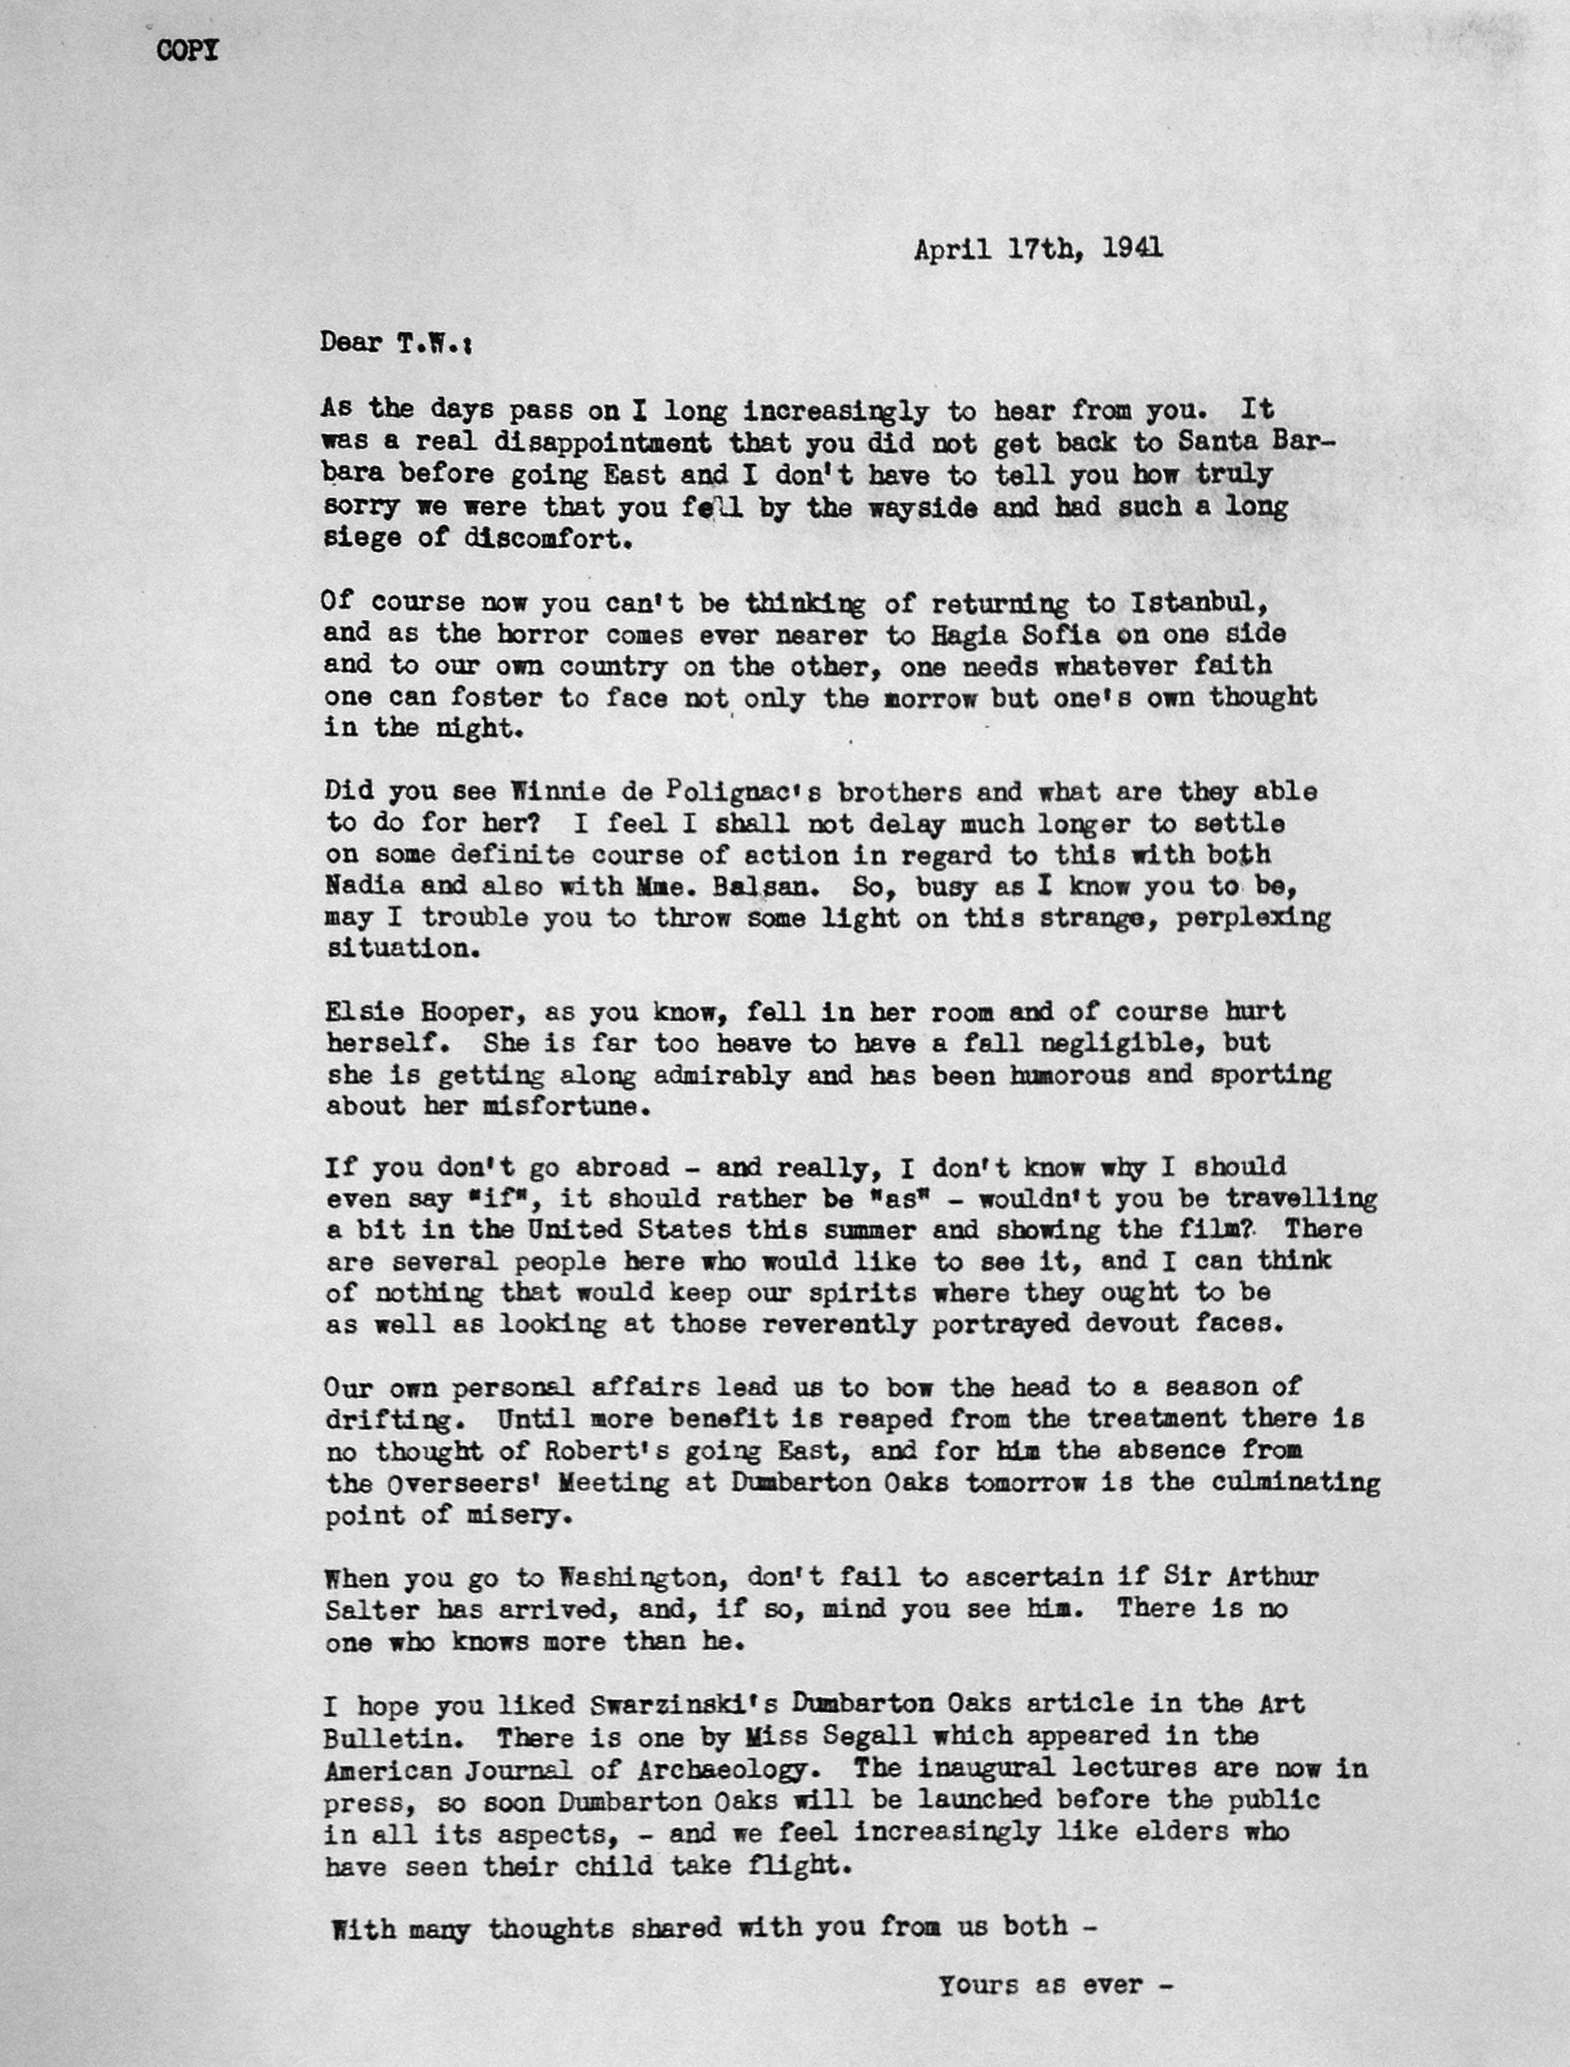 Mildred Bliss to Thomas Whittemore APril 17th, 1941